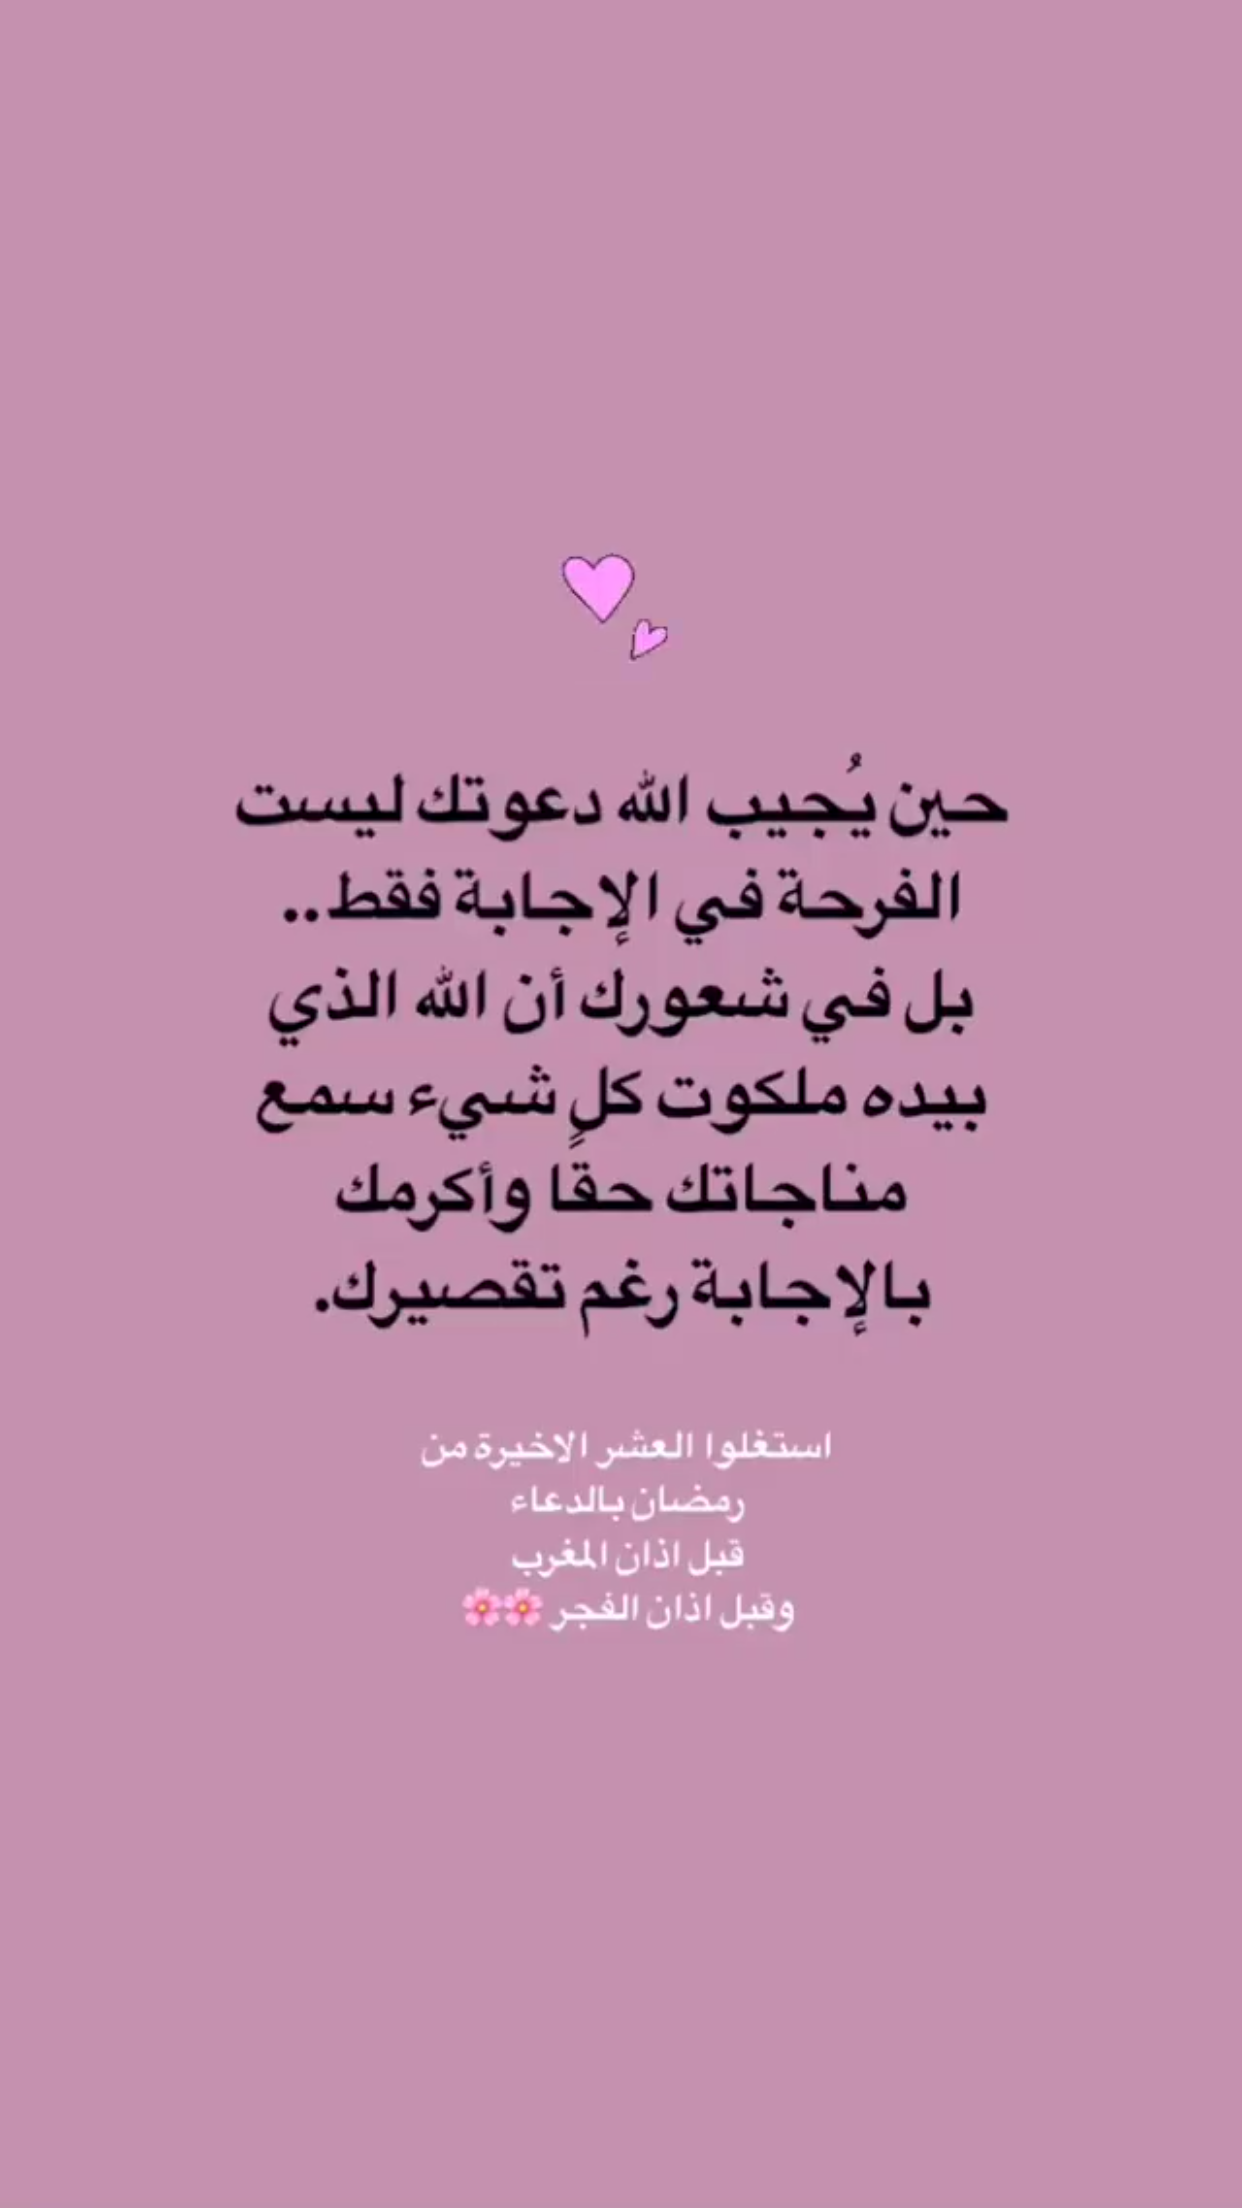 Pin By Nasreen On إيجابيون Study Motivation Quotes Islamic Phrases Cool Words